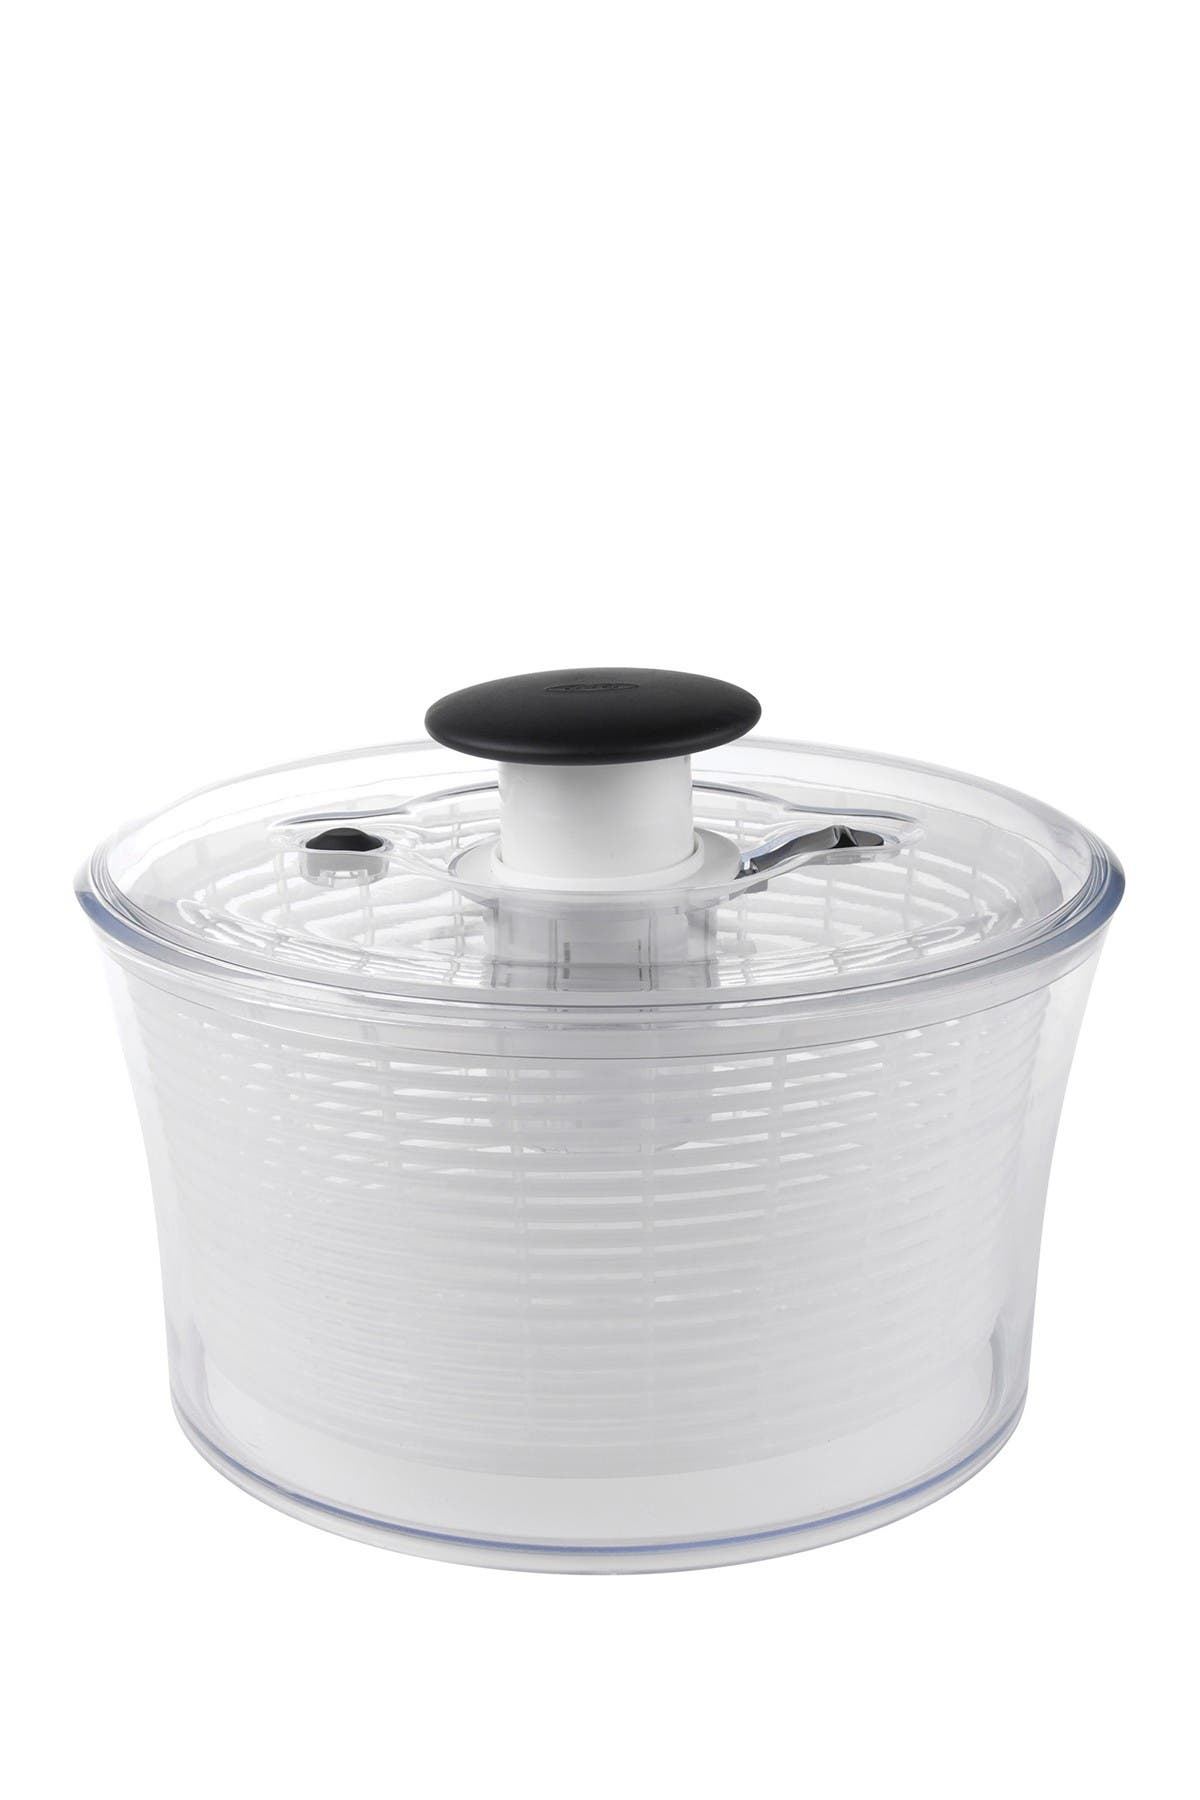 Image of Oxo Good Grips Clear Little Salad & Herb Spinner